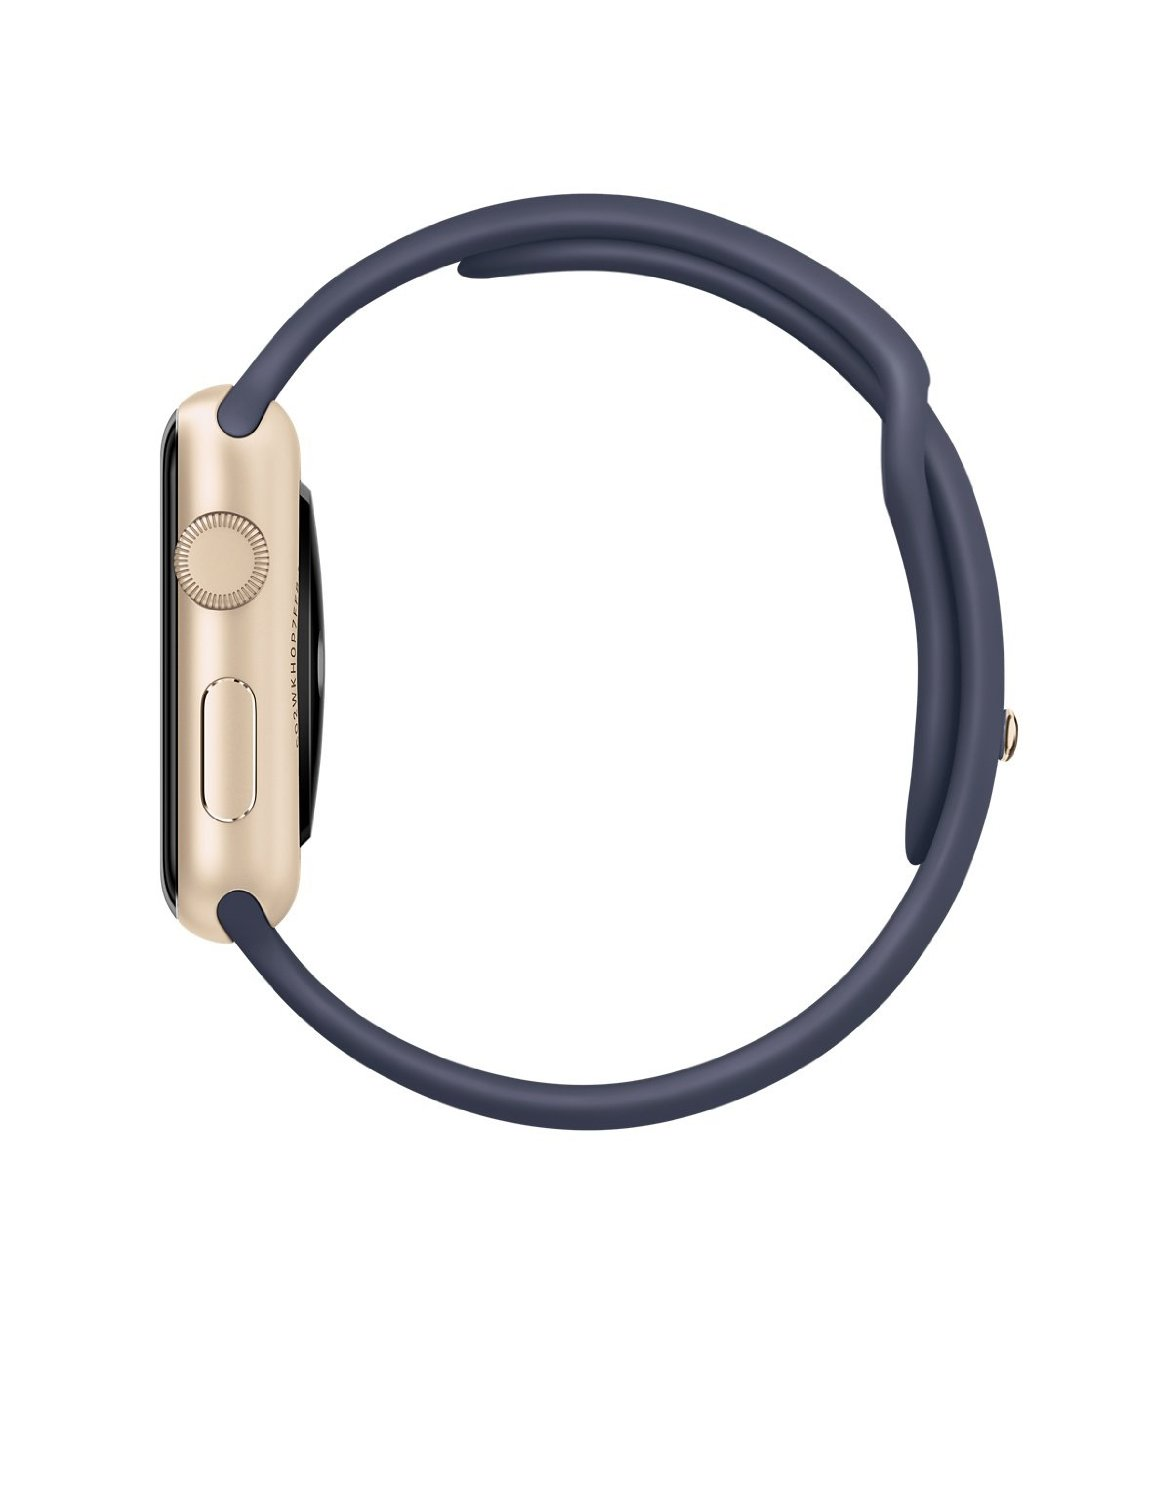 Apple Watch Sport 42mm With Midnight Blue Band And Gold Case 2 Series 1 38mm Aluminium